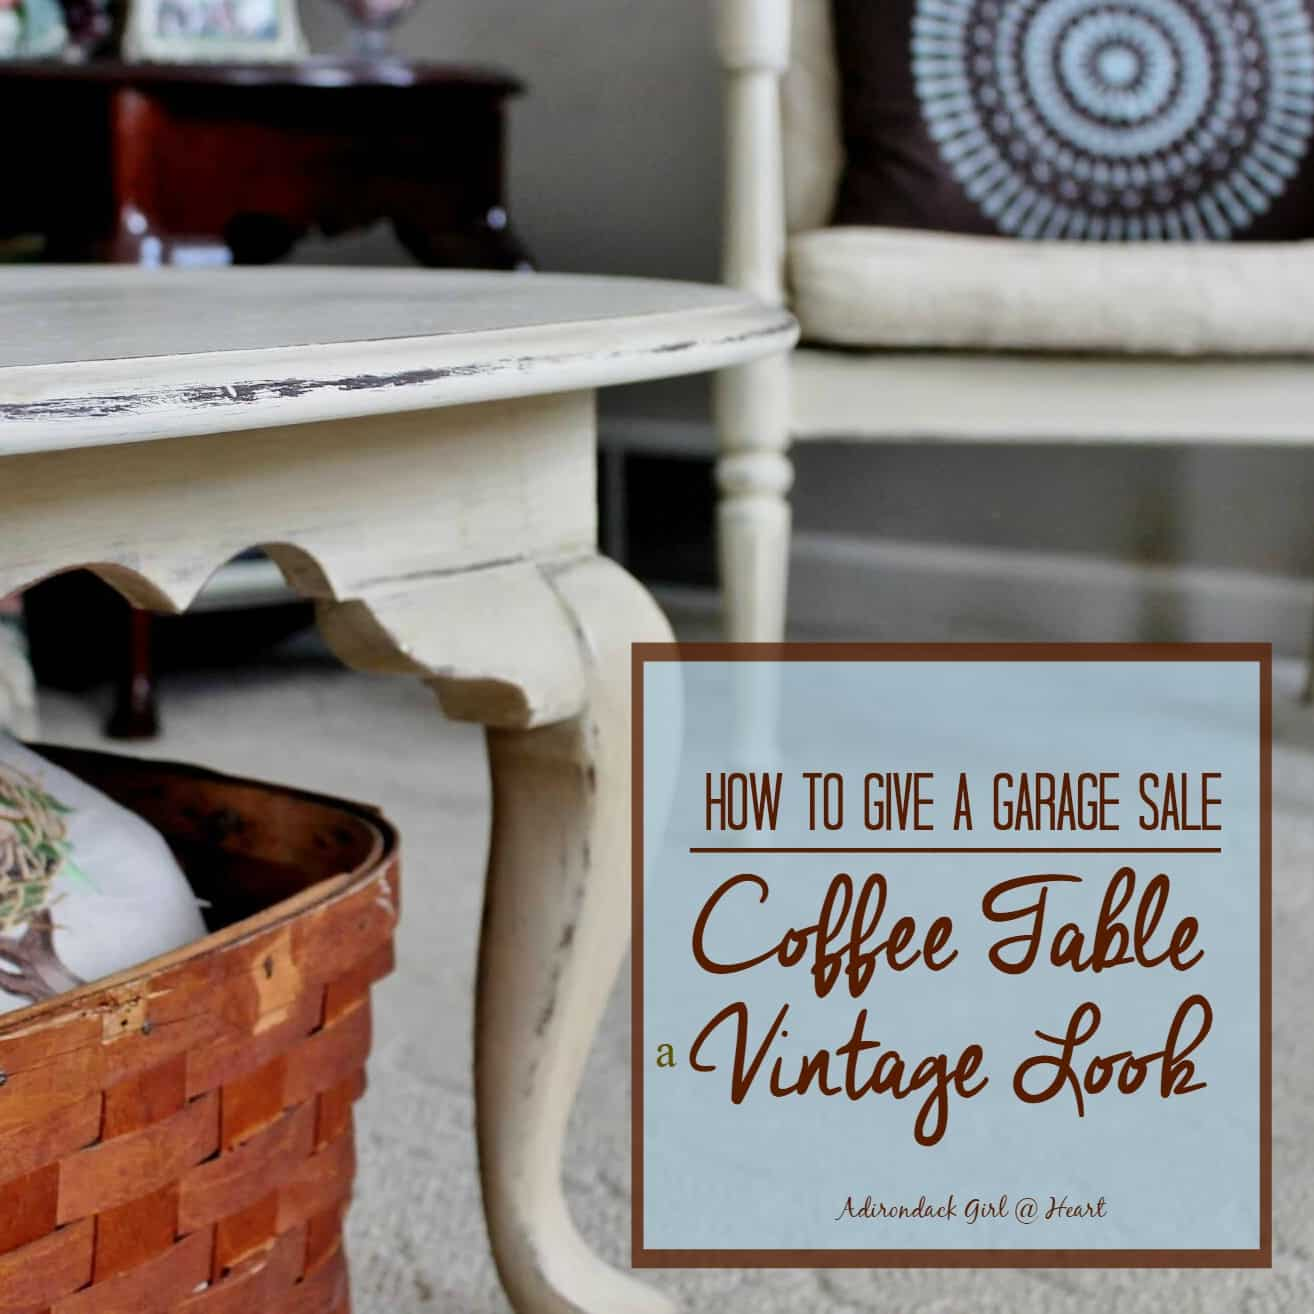 Estate Sales Near Me This Weekend: How To Give A Garage Sale Coffee Table A Vintage Look